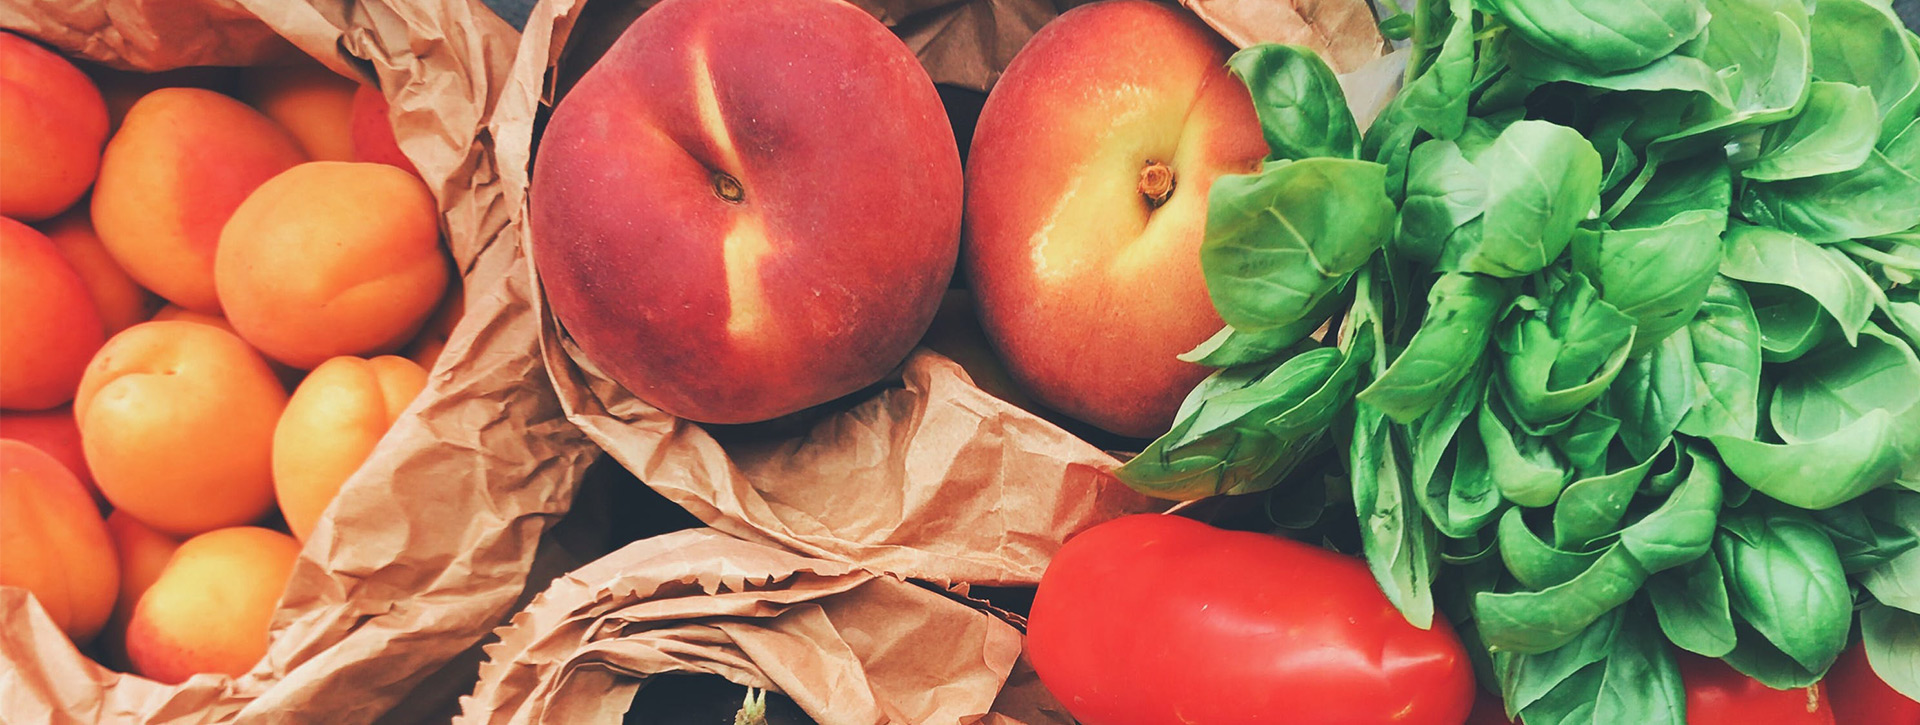 5 Healthy Foods to Boost Your Energy